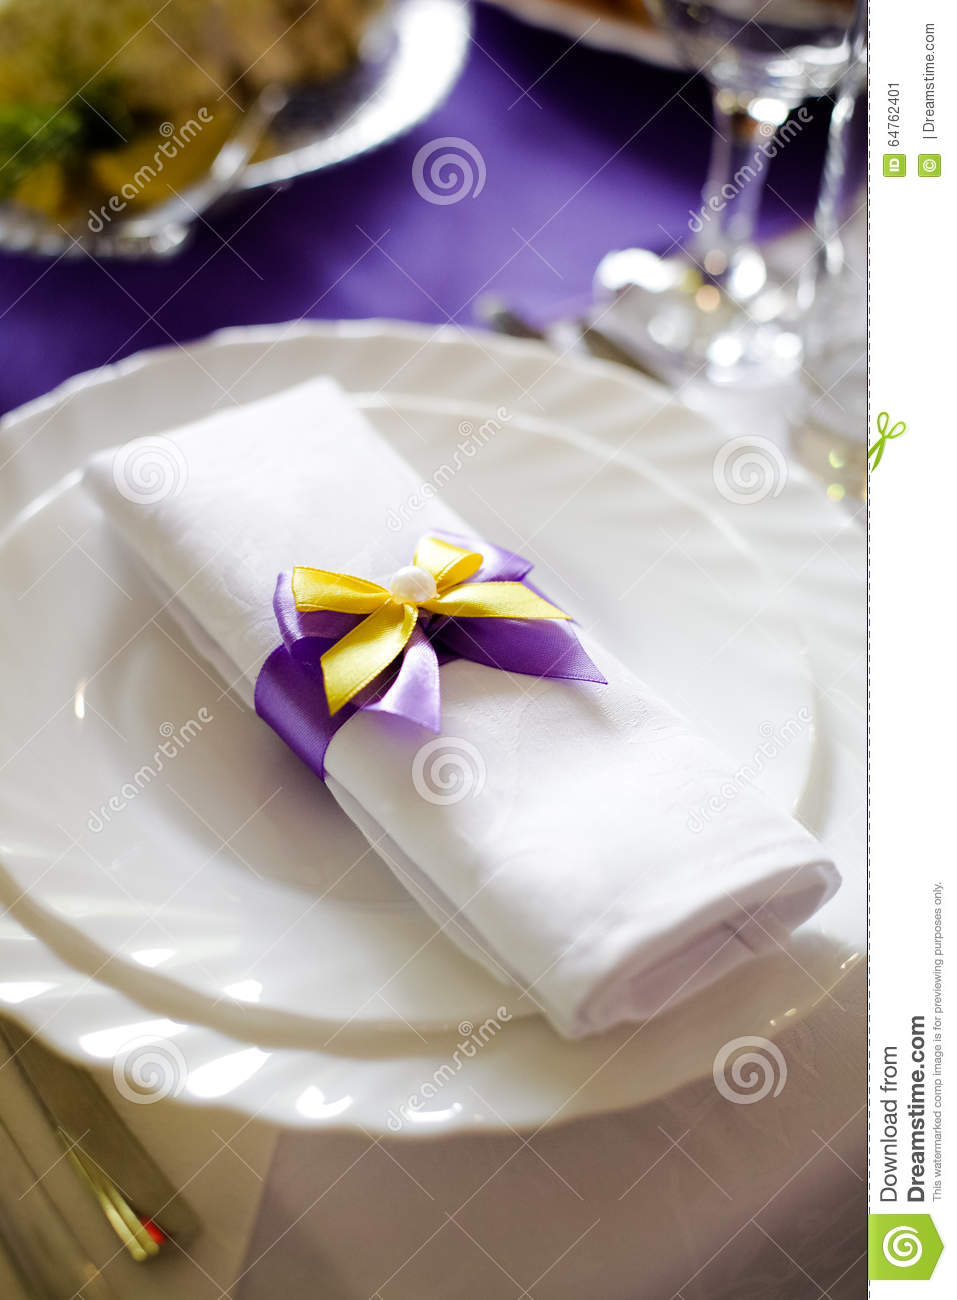 Wedding Doily White With Purple Yellow Bowknot Decoration On The